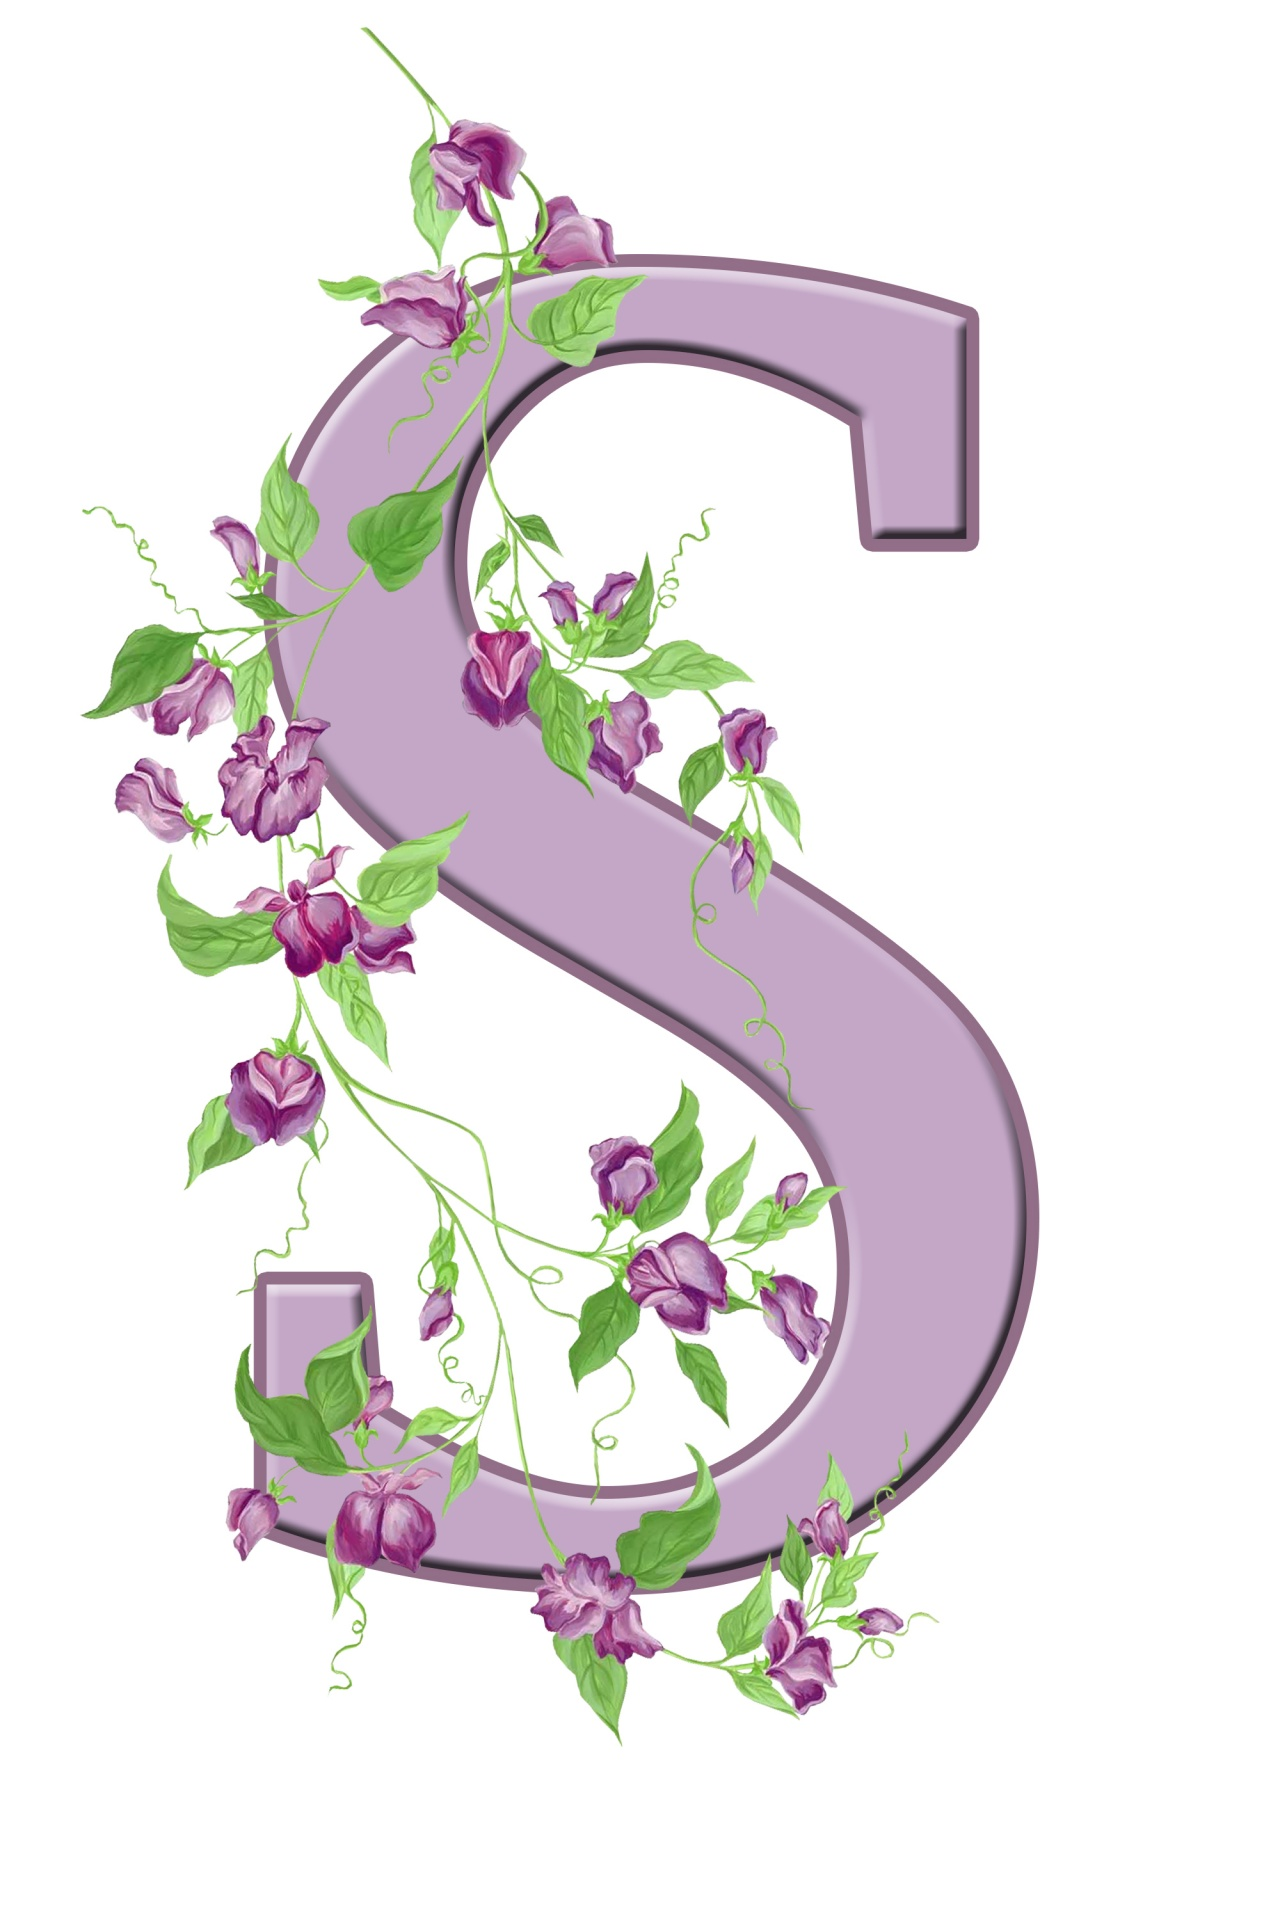 S Letter Monogram Initial Alphabet Free Photo From Needpix Com